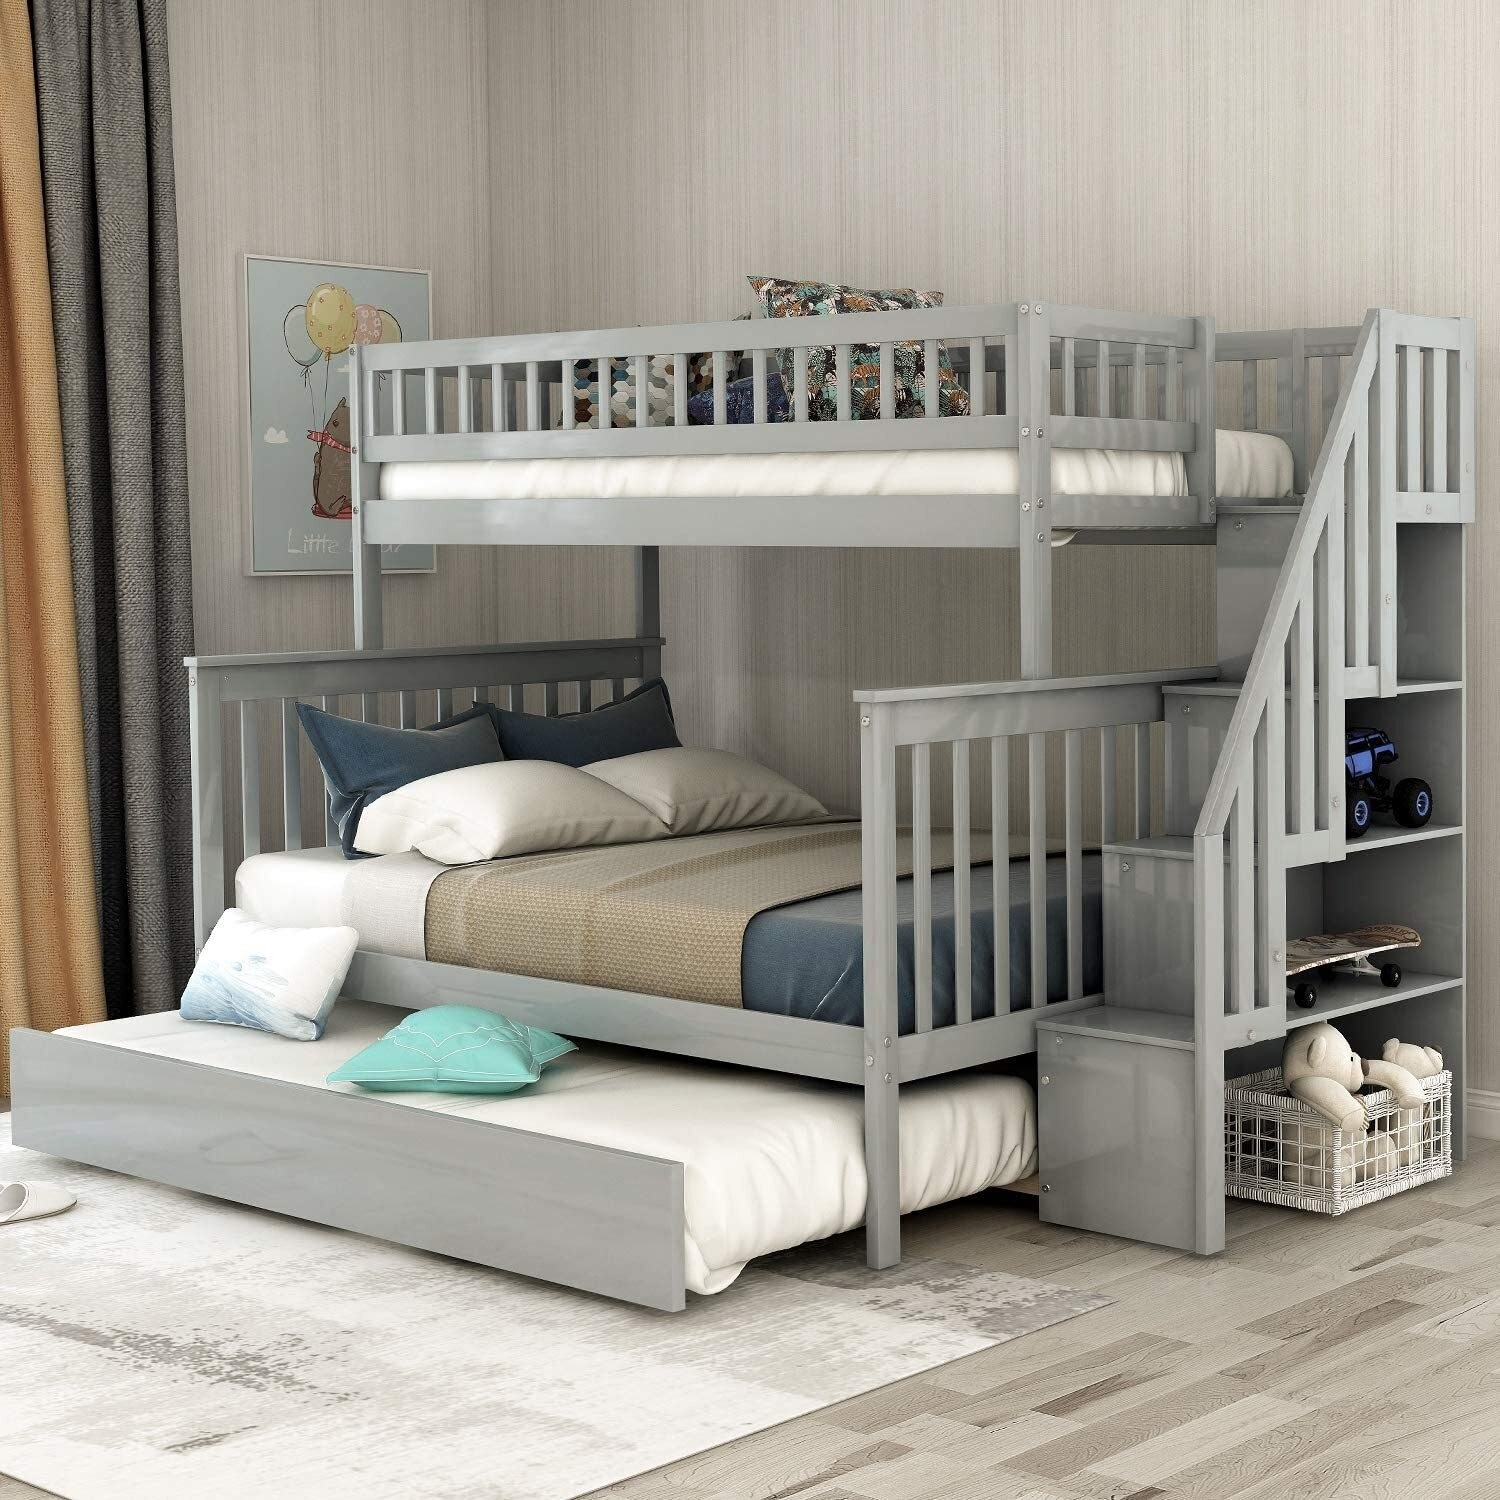 7 Cool Designs For Triple Bunk Beds Foter